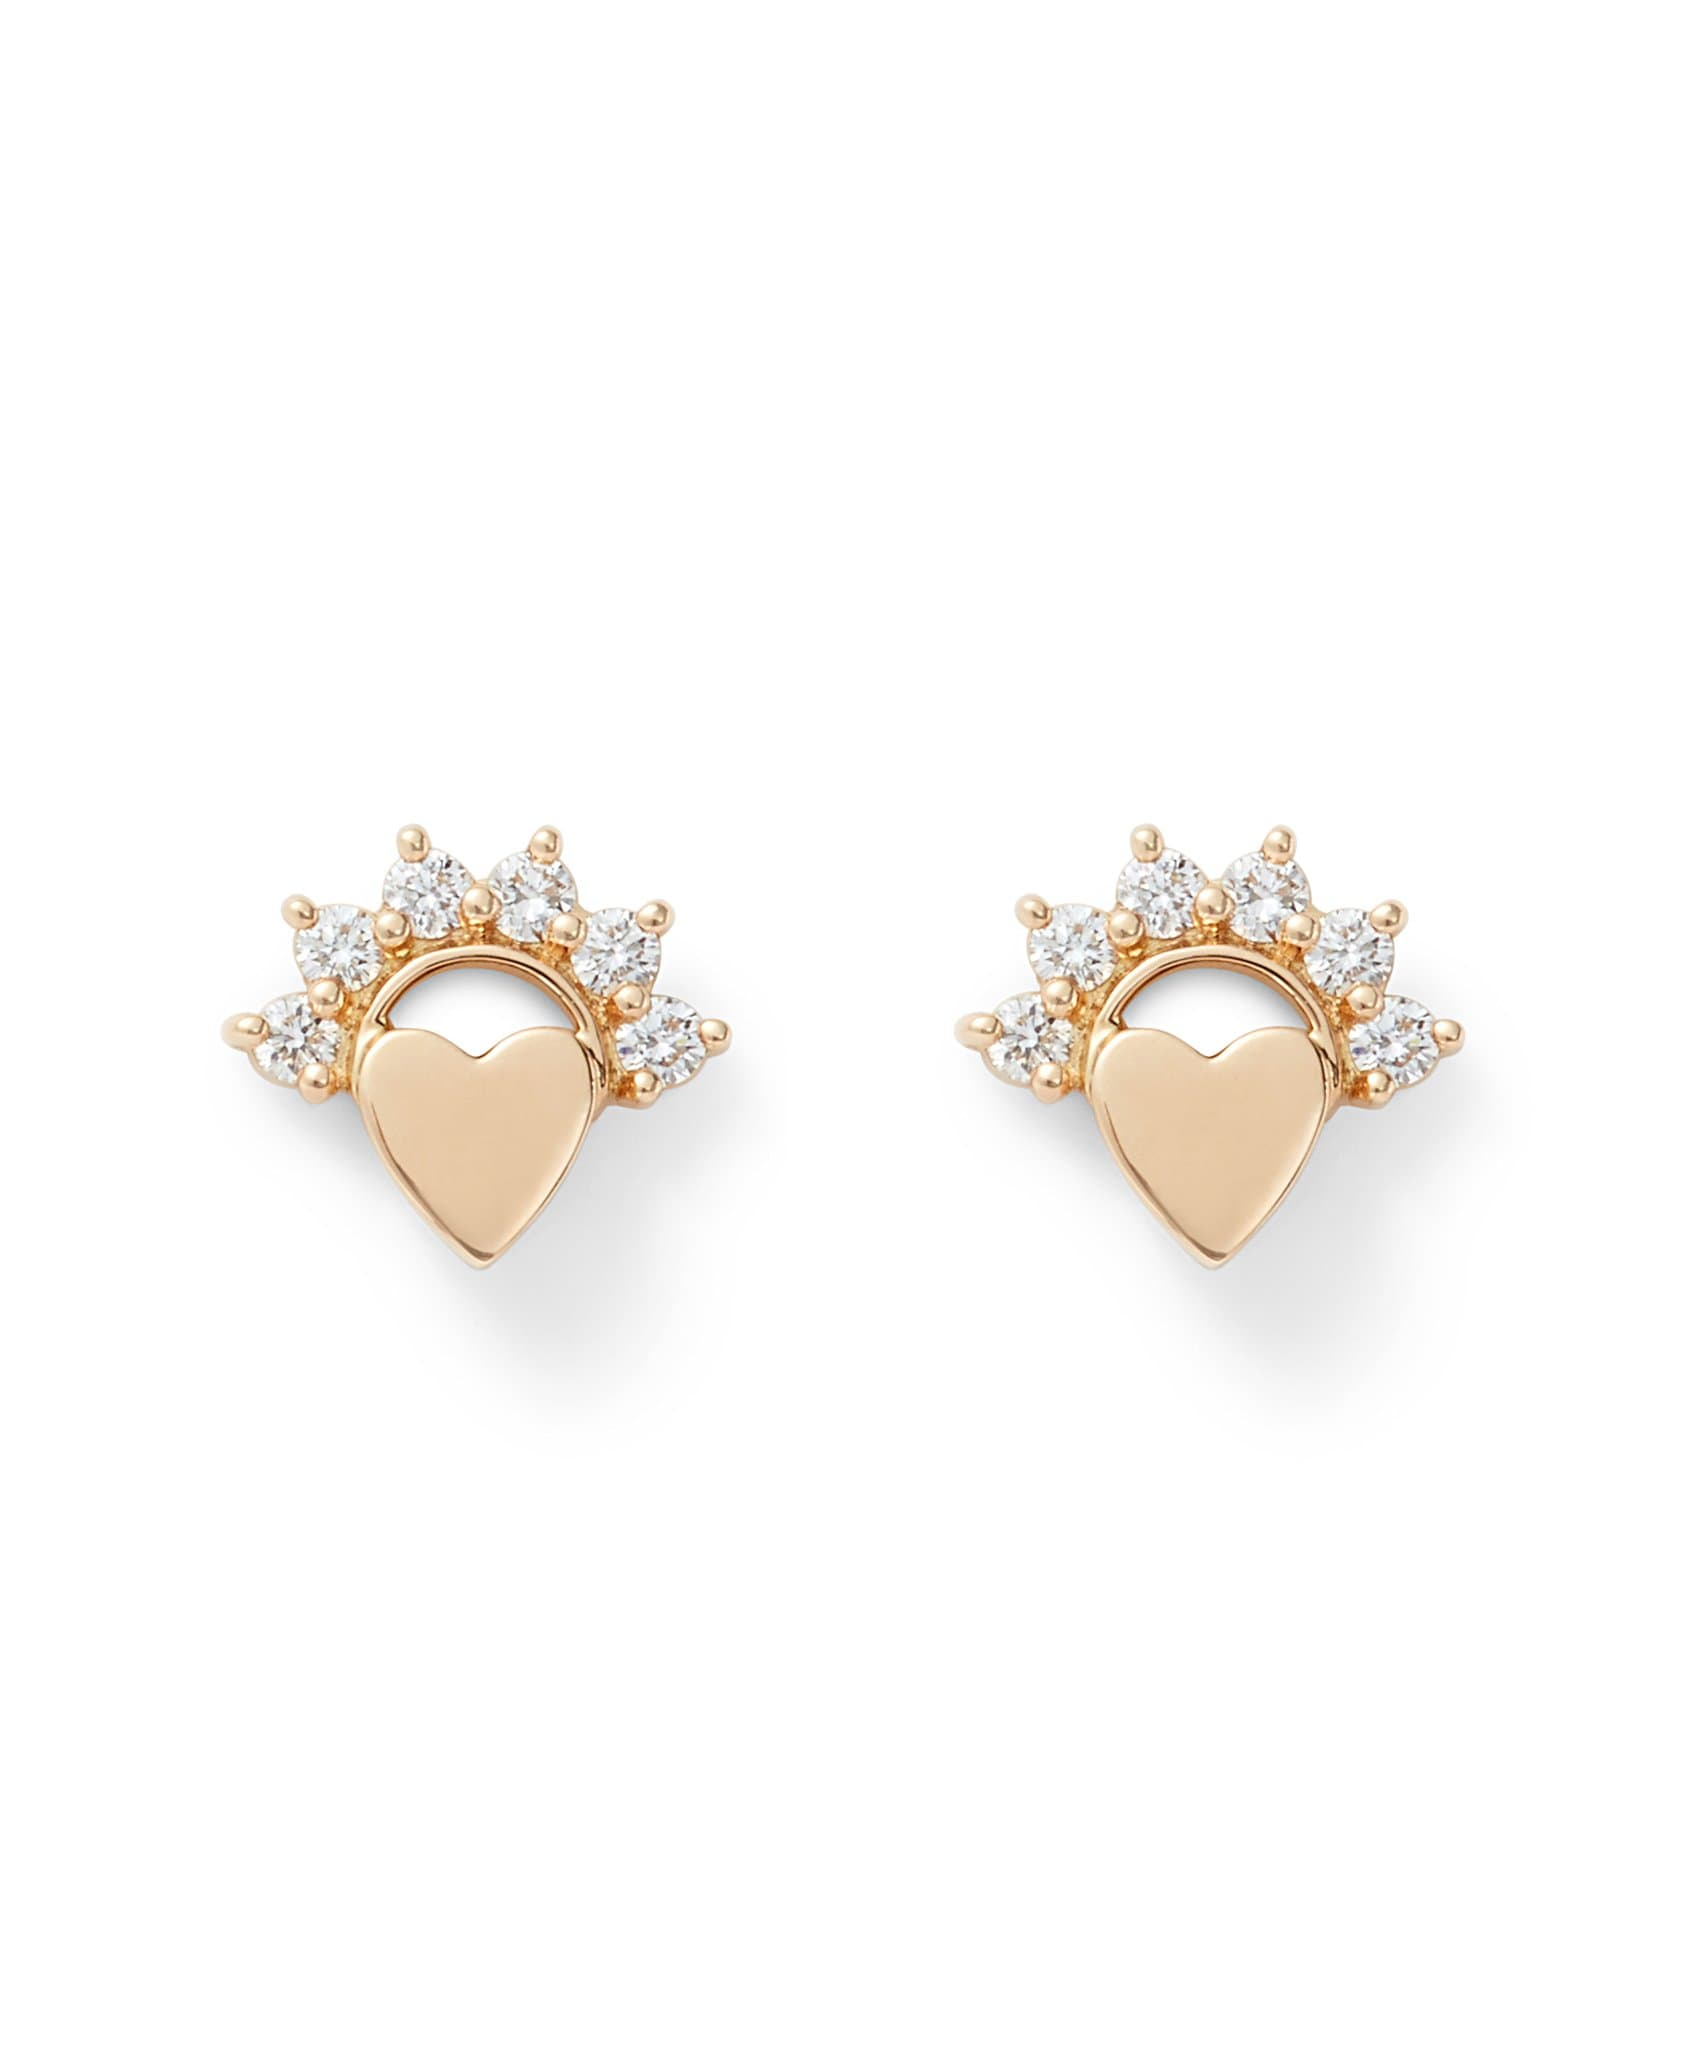 Love Studs: Discover Luxury Fine Jewelry | Nouvel Heritage